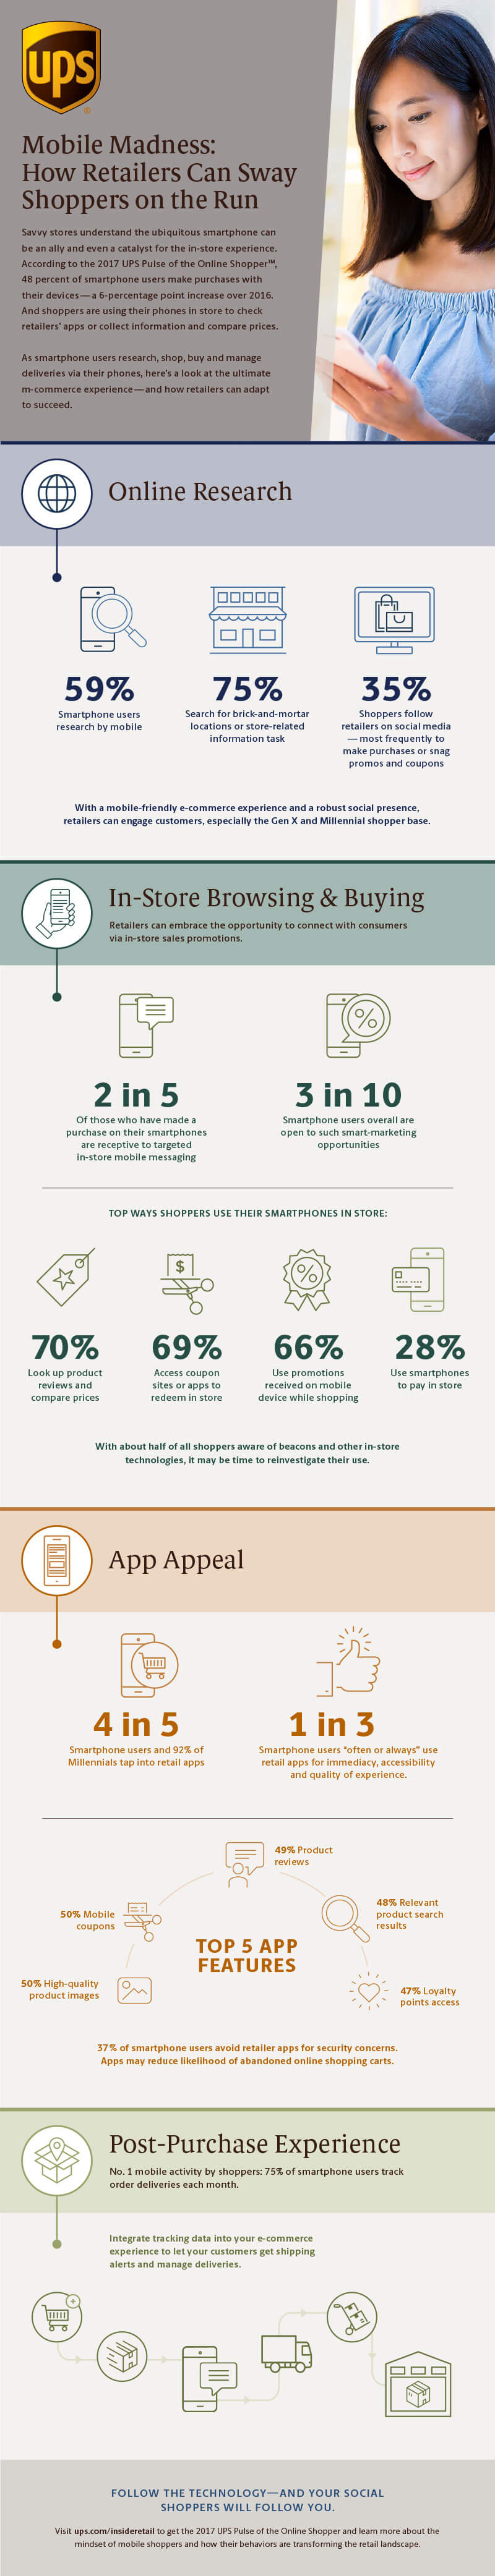 MobileMadness_Infographic